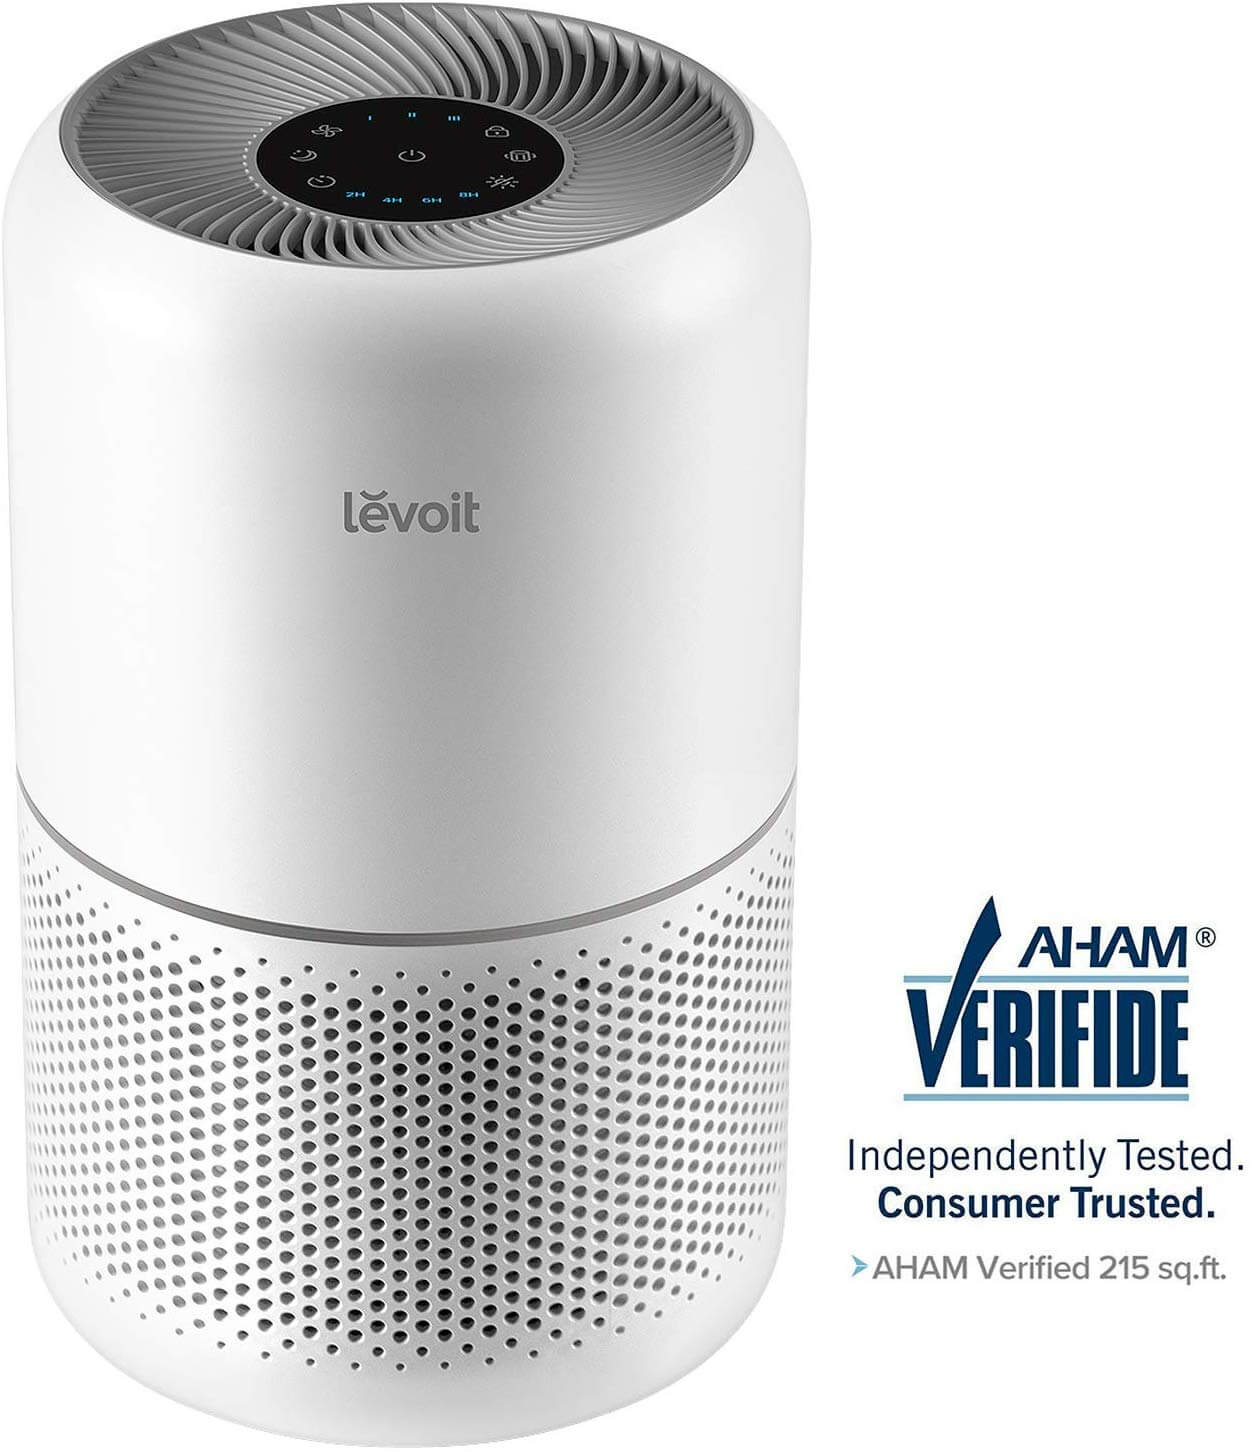 levoit core 300 product 1